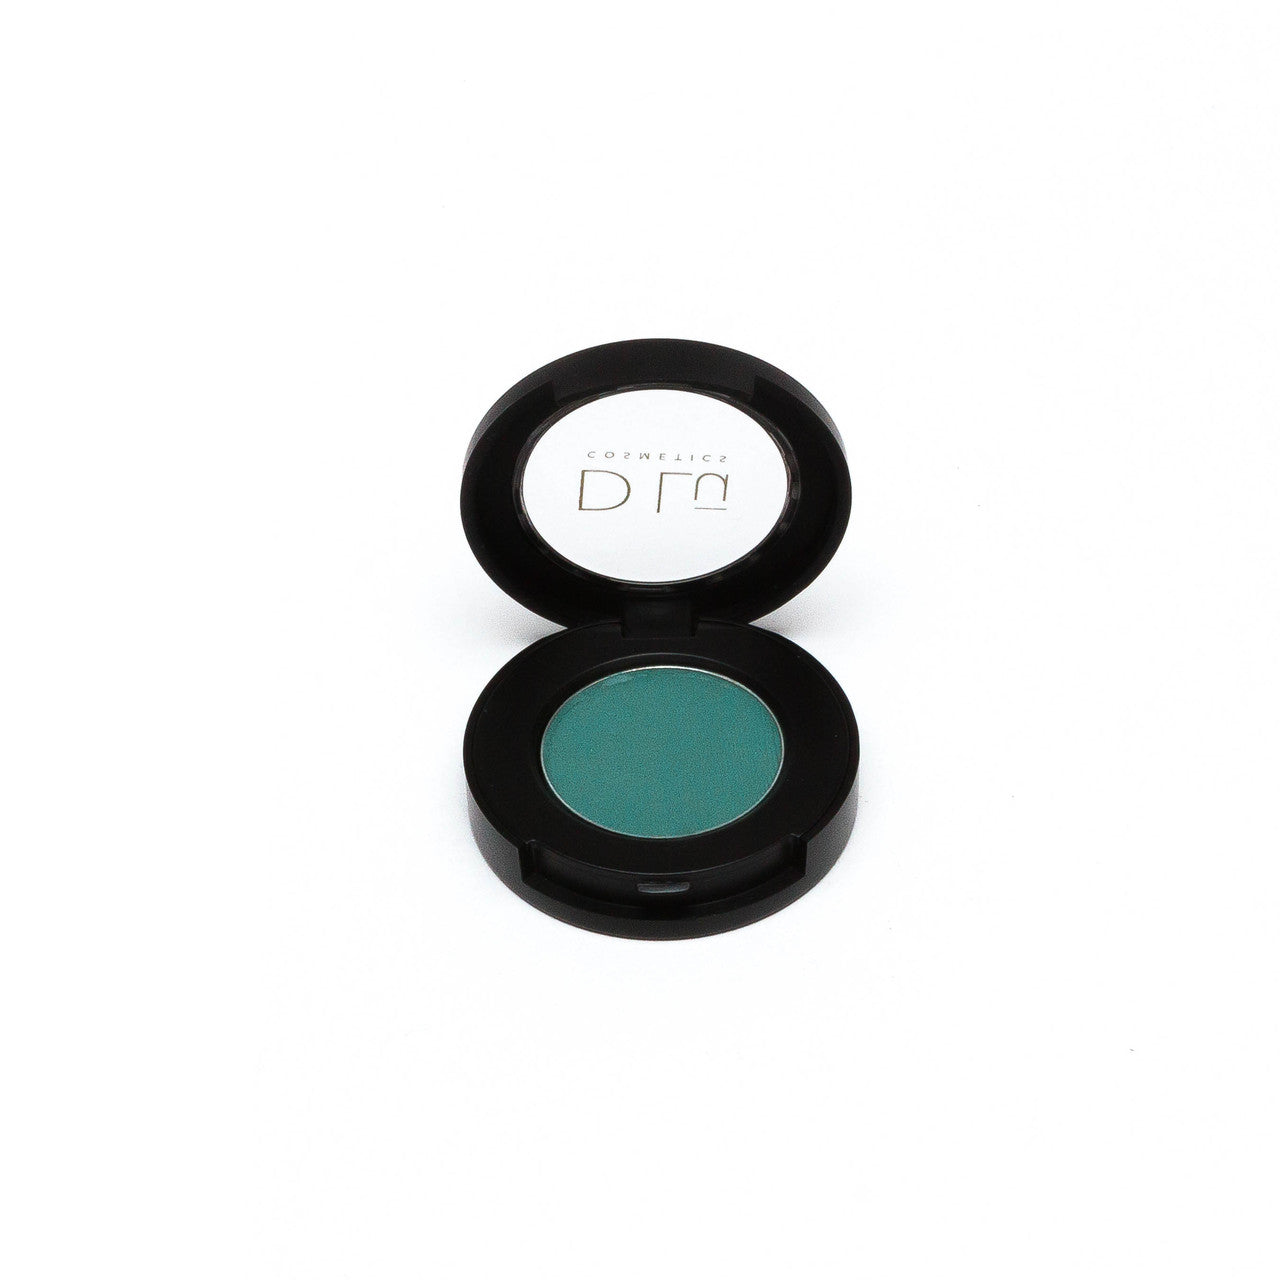 DLu Royale Eyeshadow - Peacock